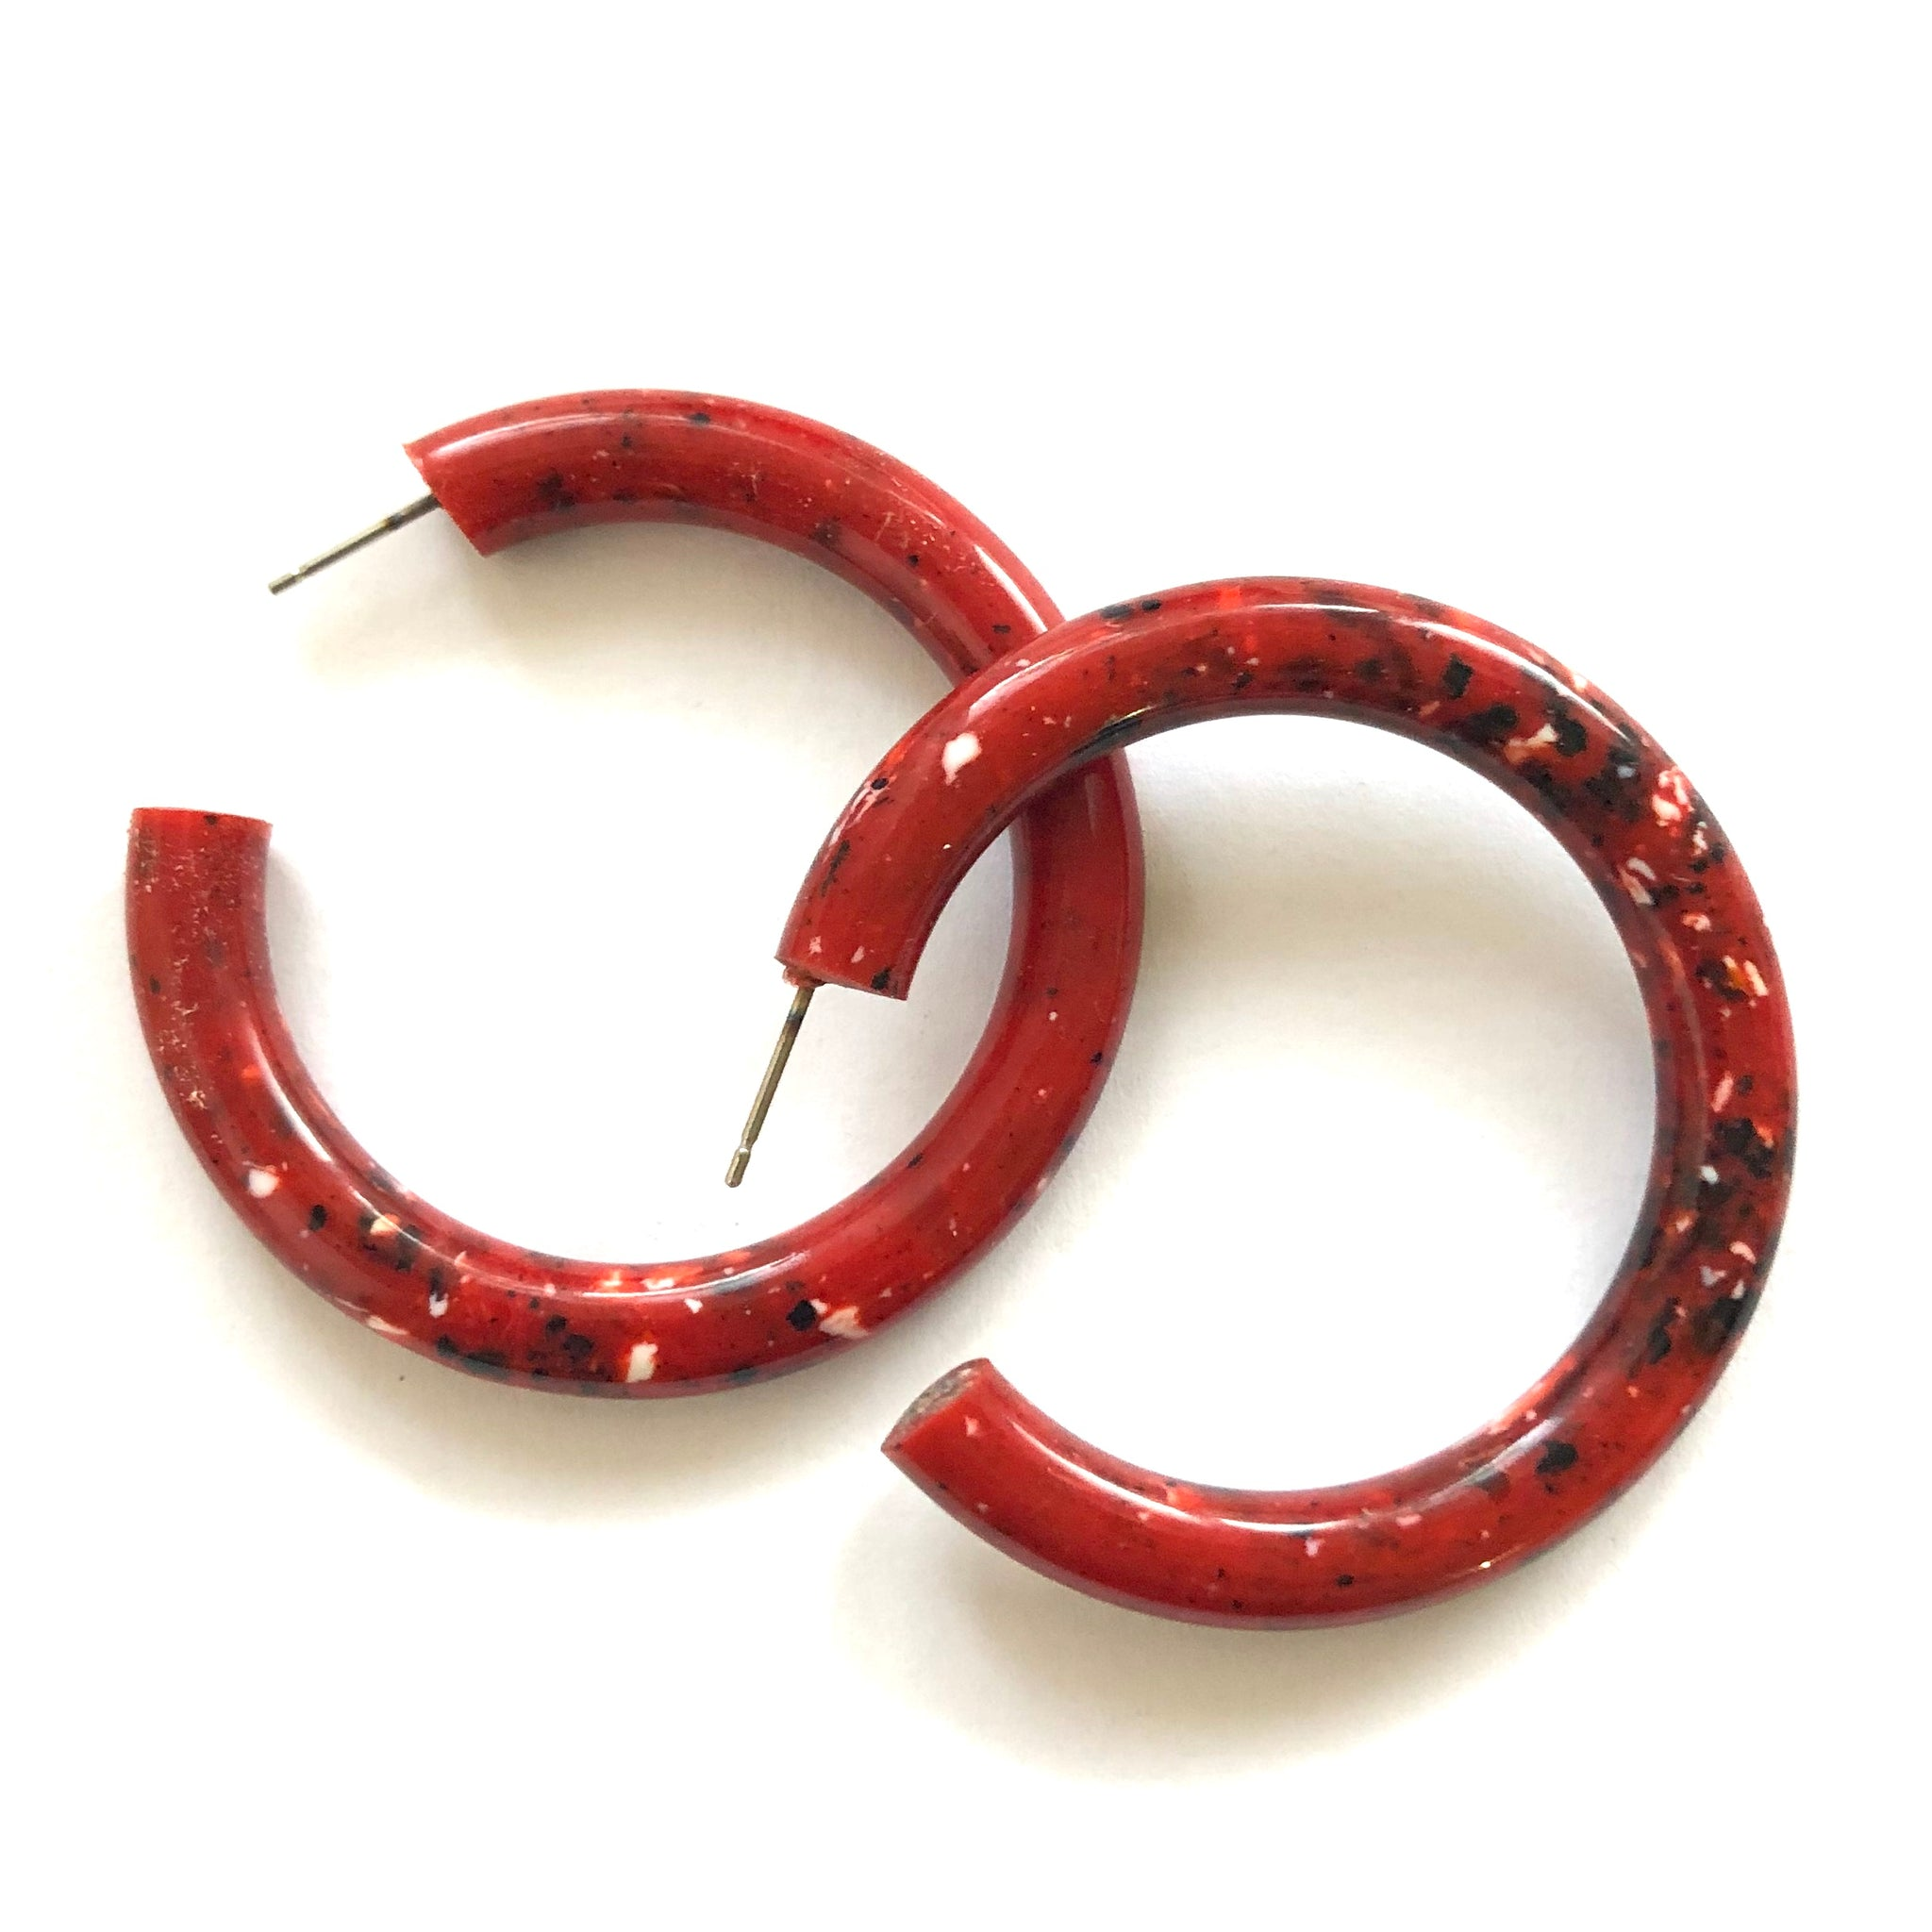 Brick Red Granite Large Jelly Tube Hoop Earrings 2 inch